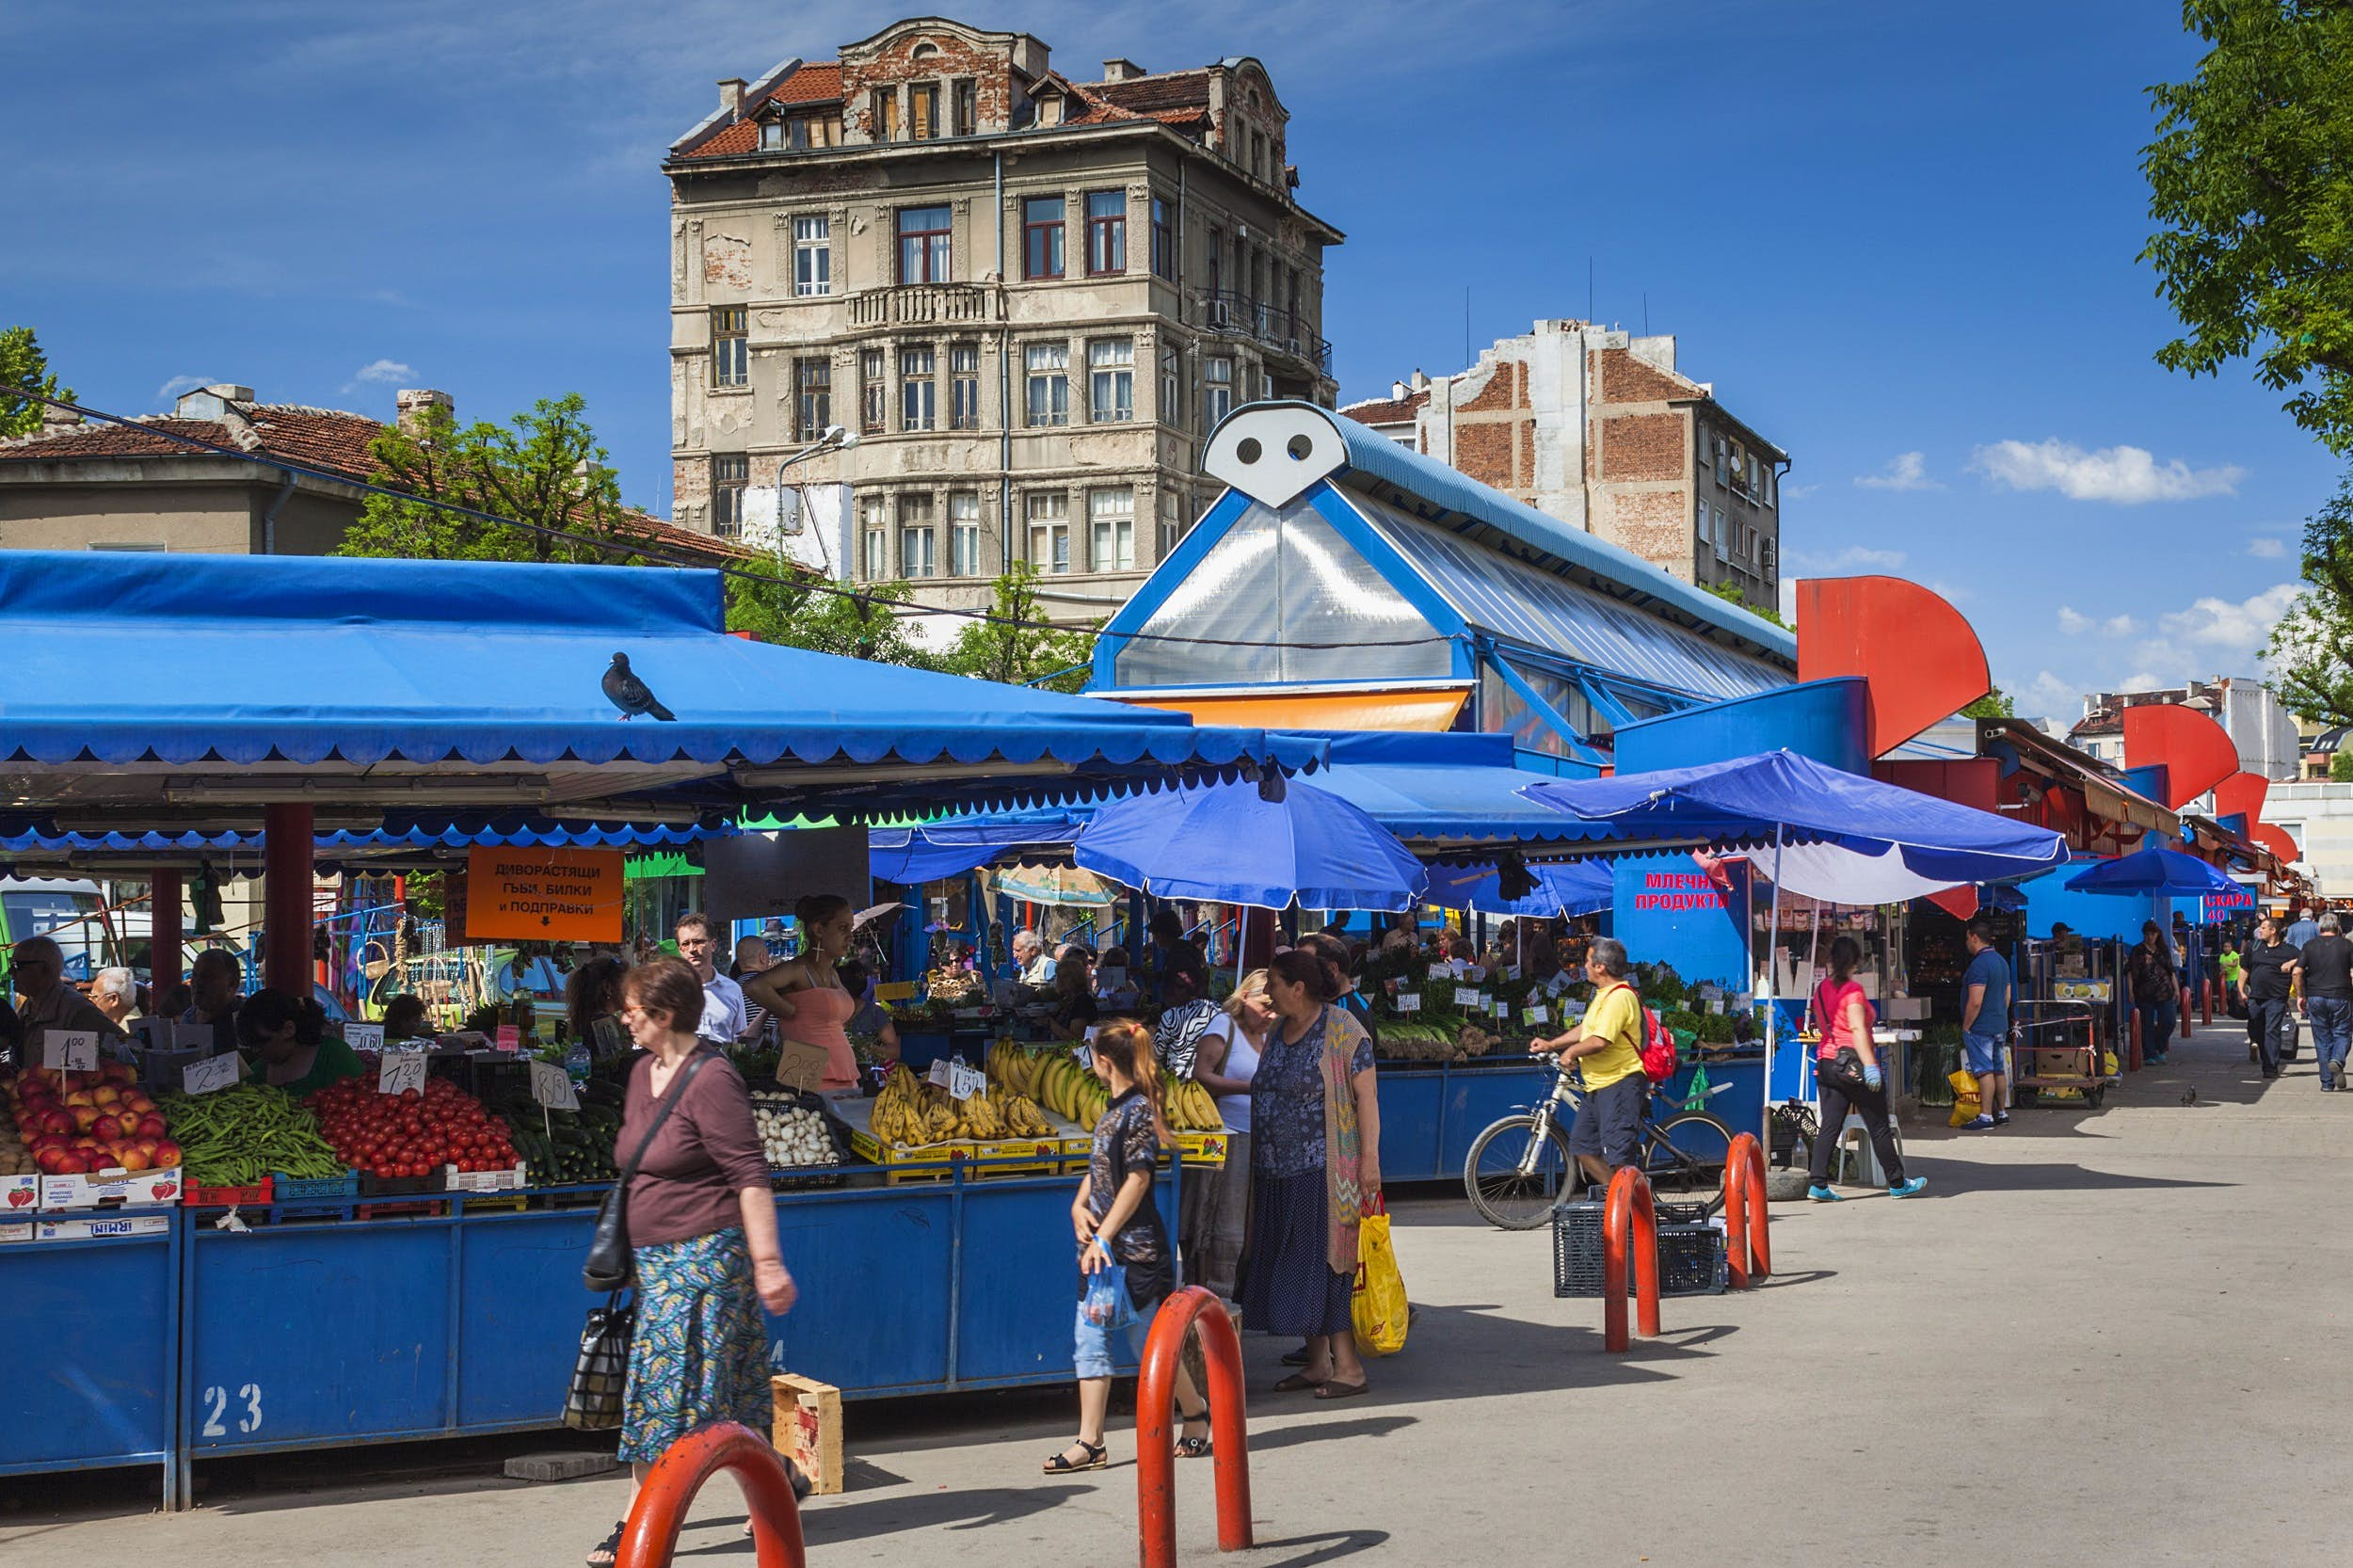 Shoppers stroll by a series of stalls packed with fruits and vegetables under a bright blue canopy